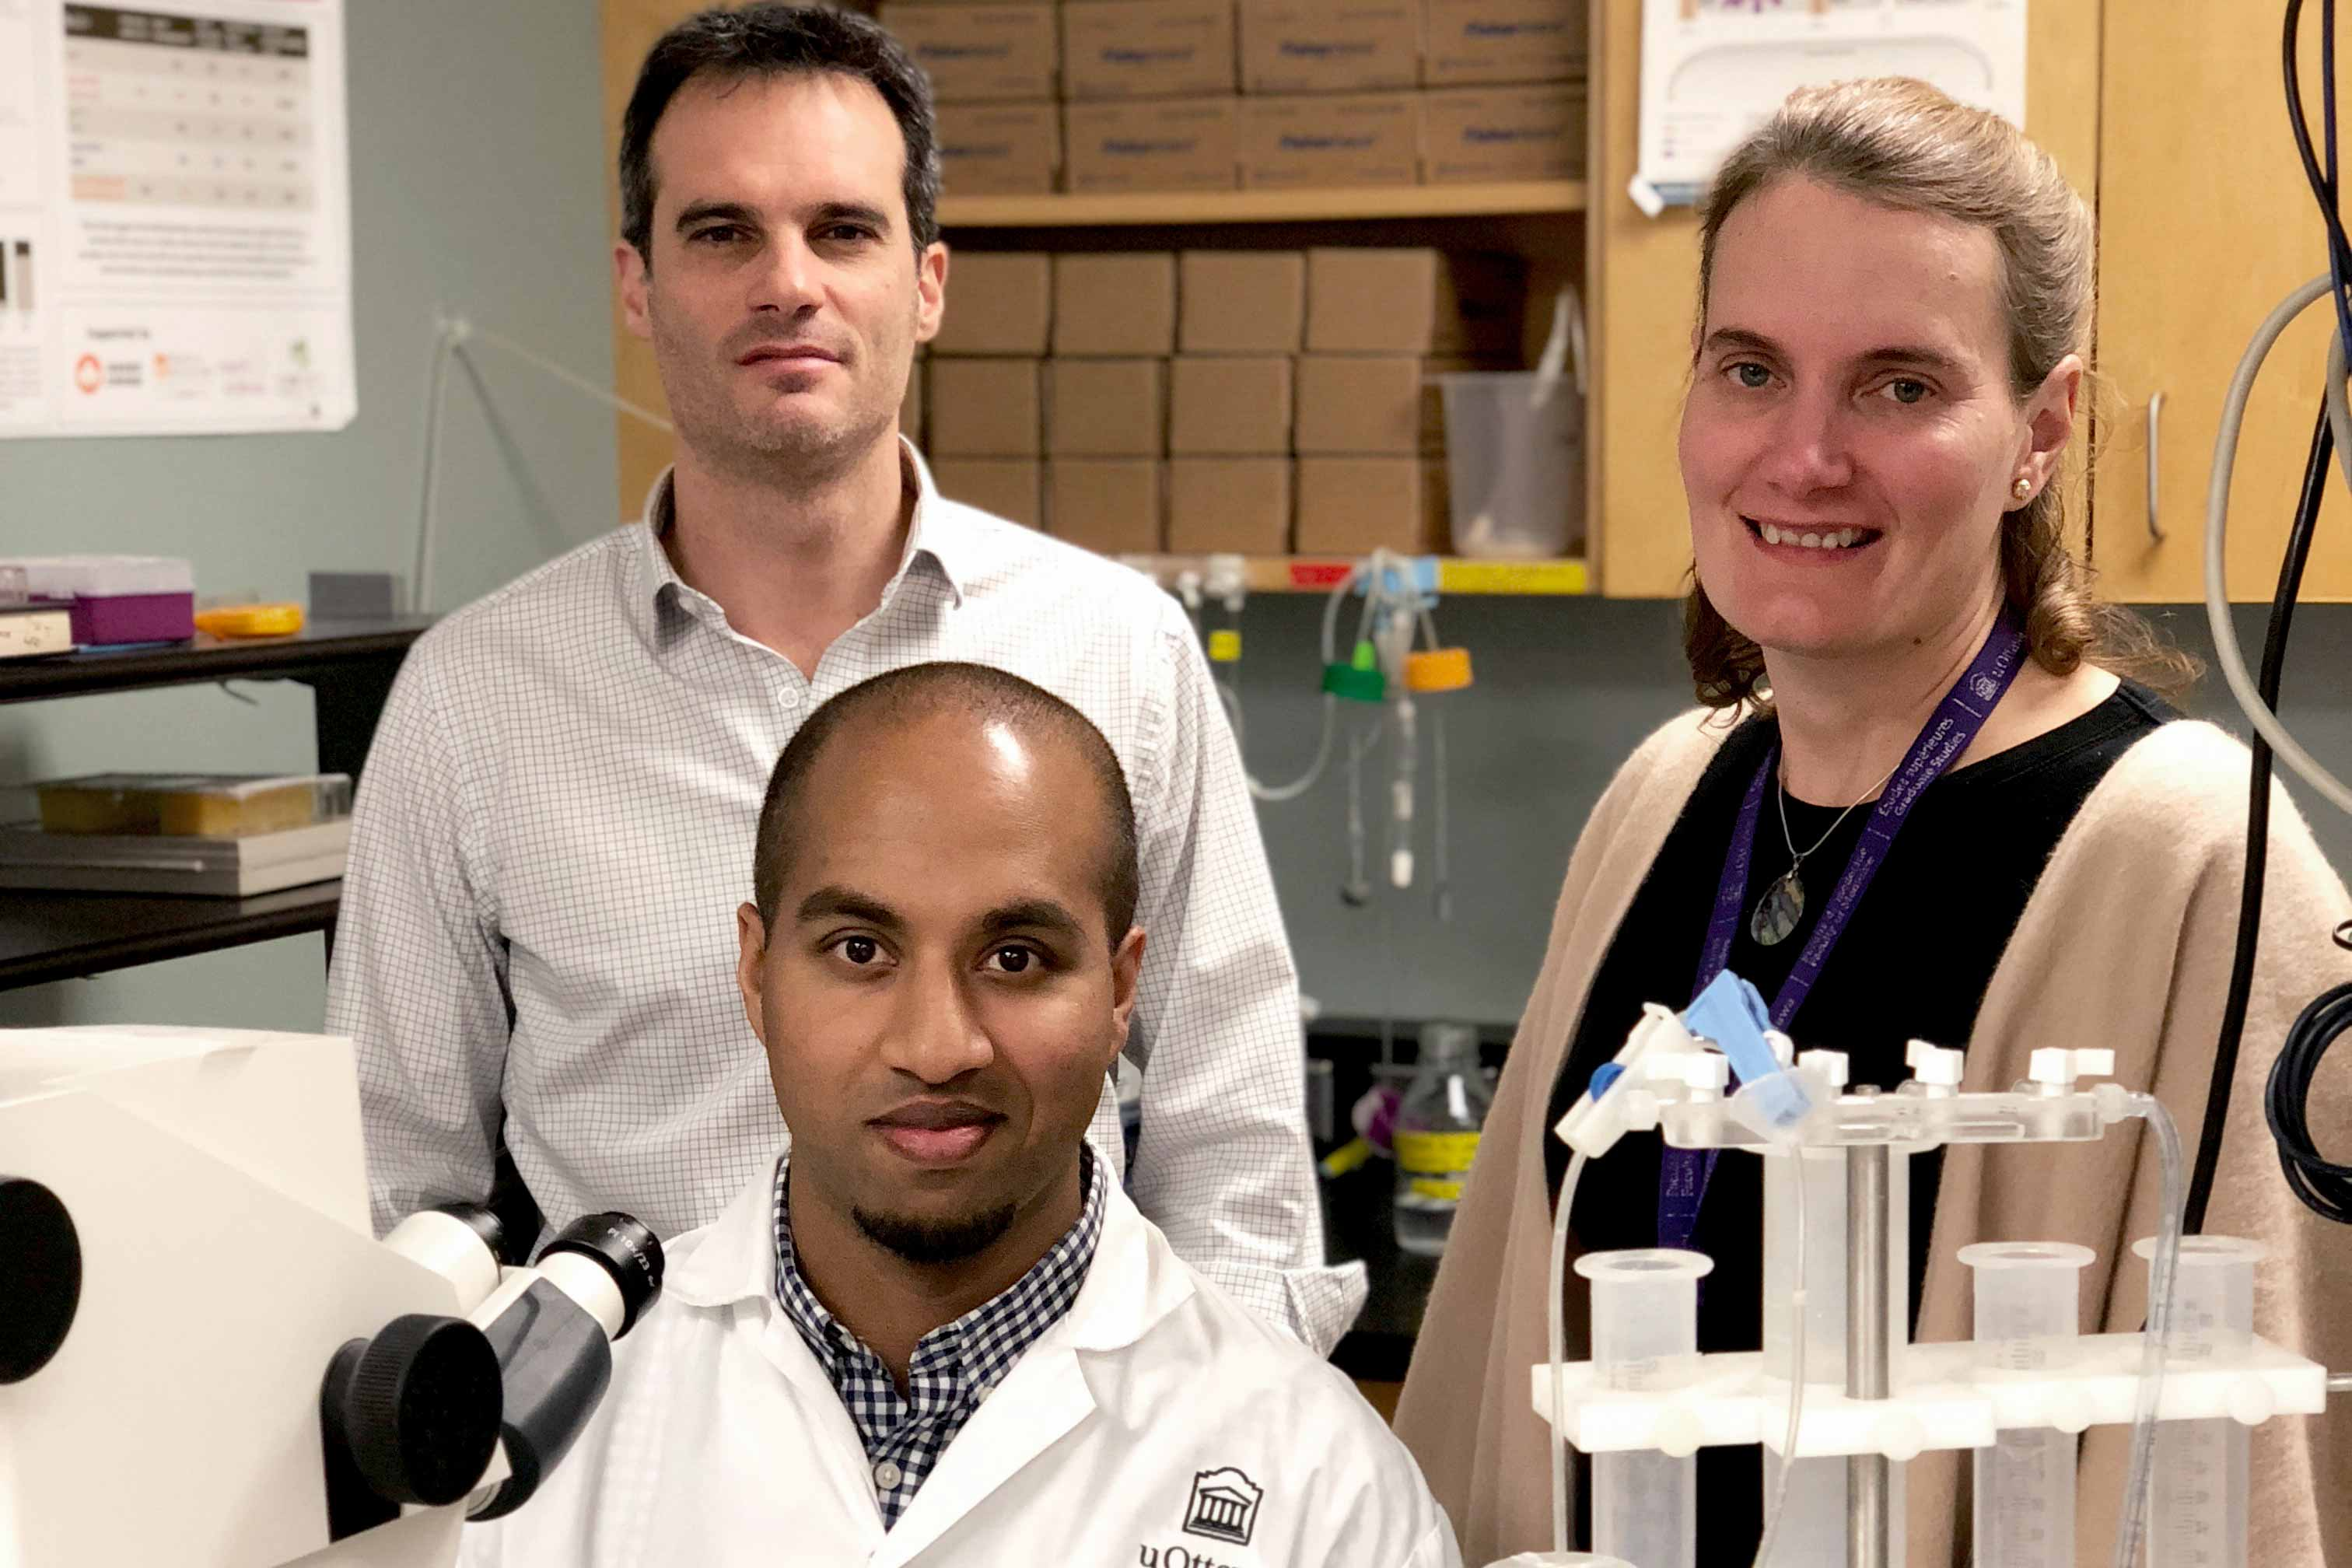 Photo of Dr. Jean-Claude Béïque, Dr. Timal Kannangara and Dr. Diane Lagace in their lab.